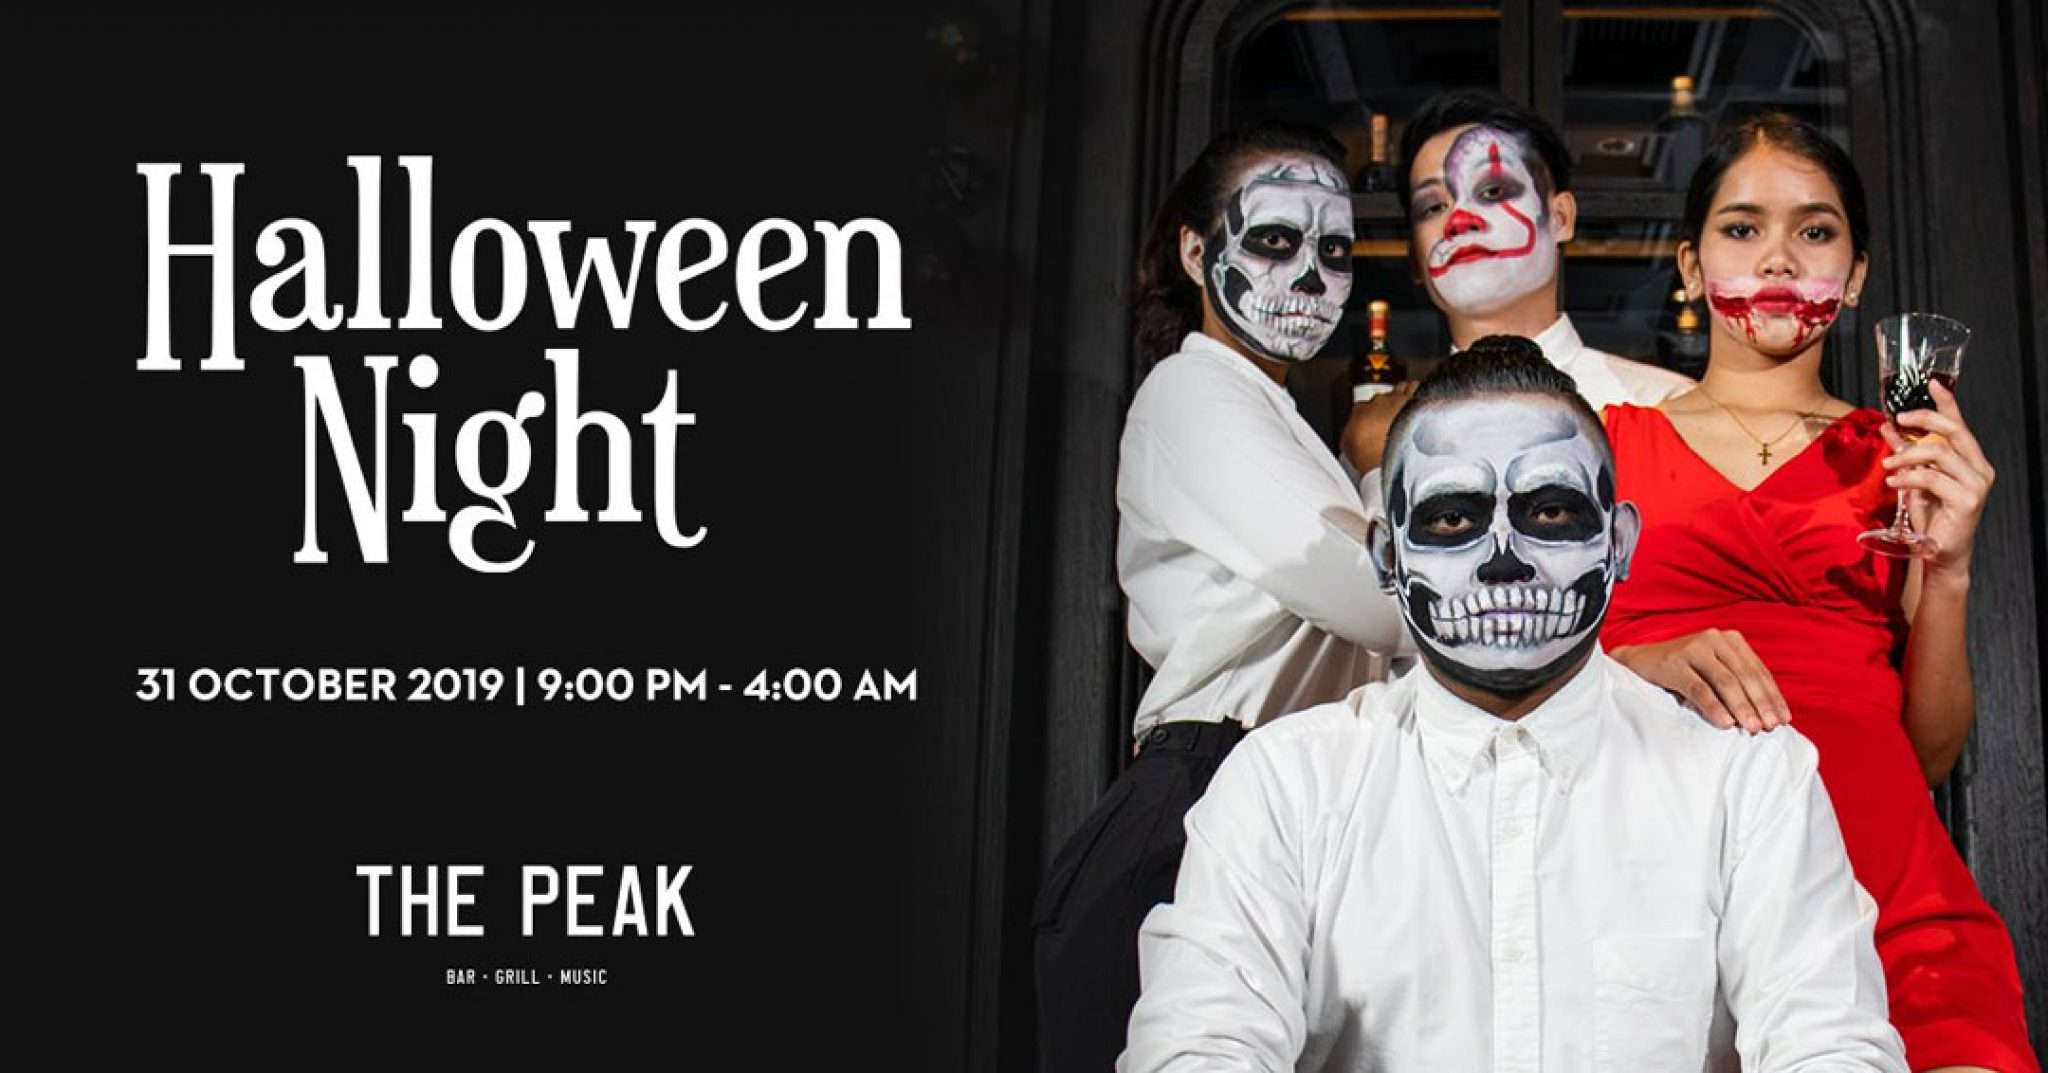 The Peak: Halloween Night